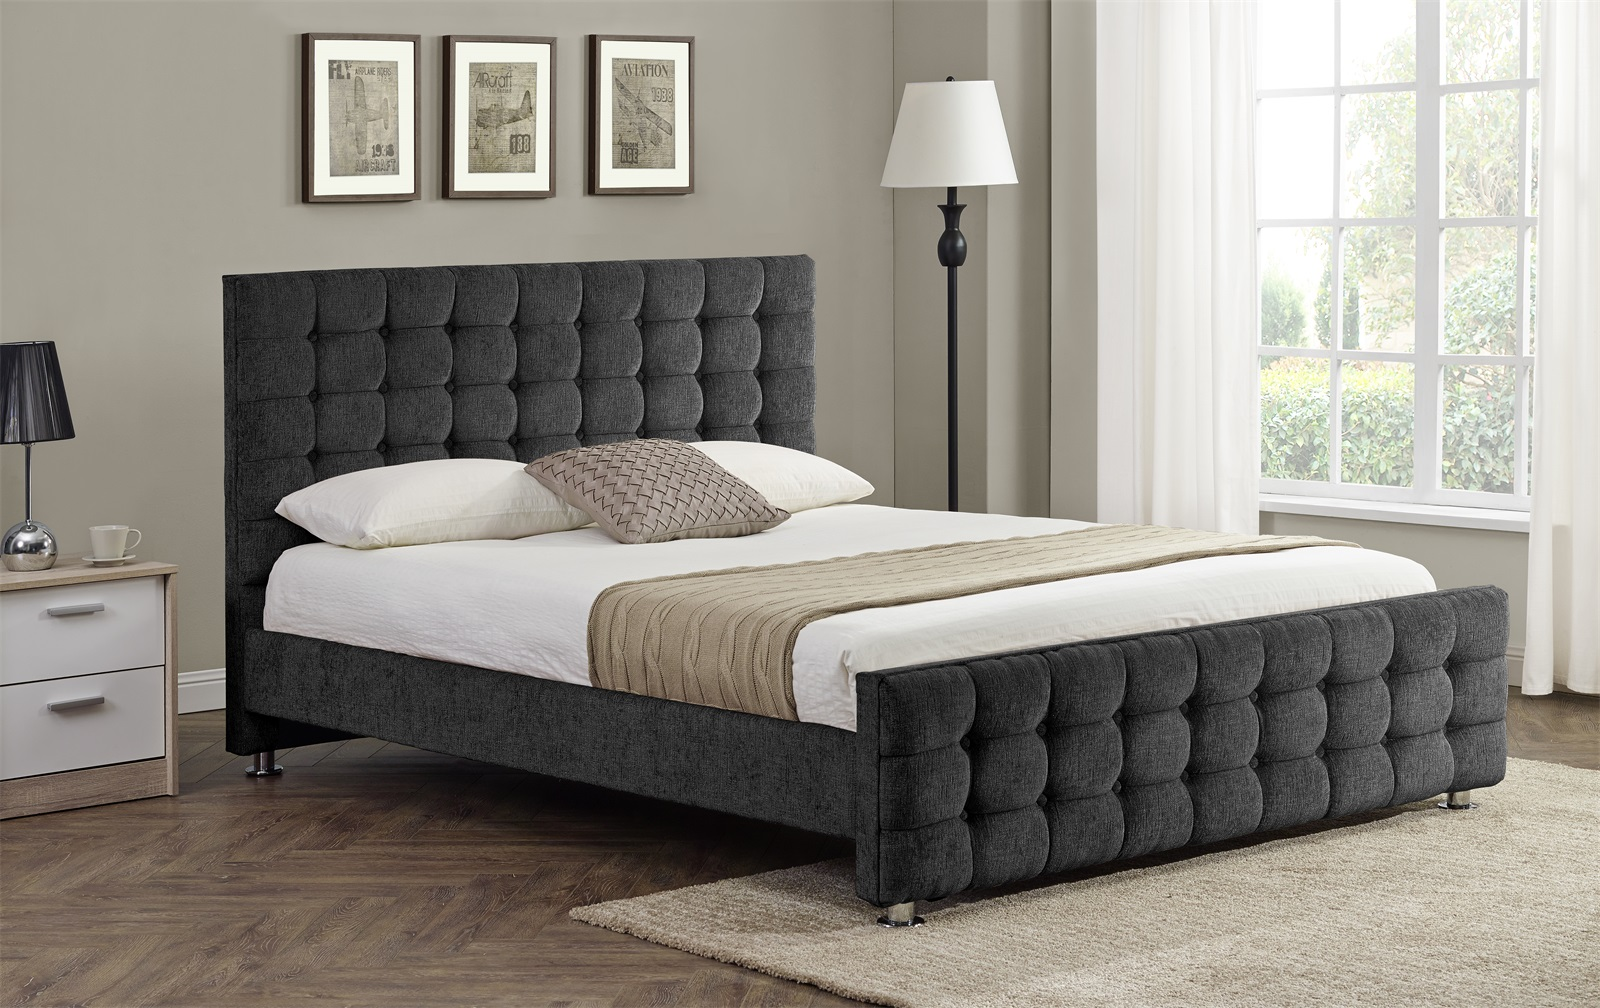 Boston buttoned detail charcoal bed frame sensation sleep beds and mattresses - Beautiful snooze bedroom suites packing comfort in style ...